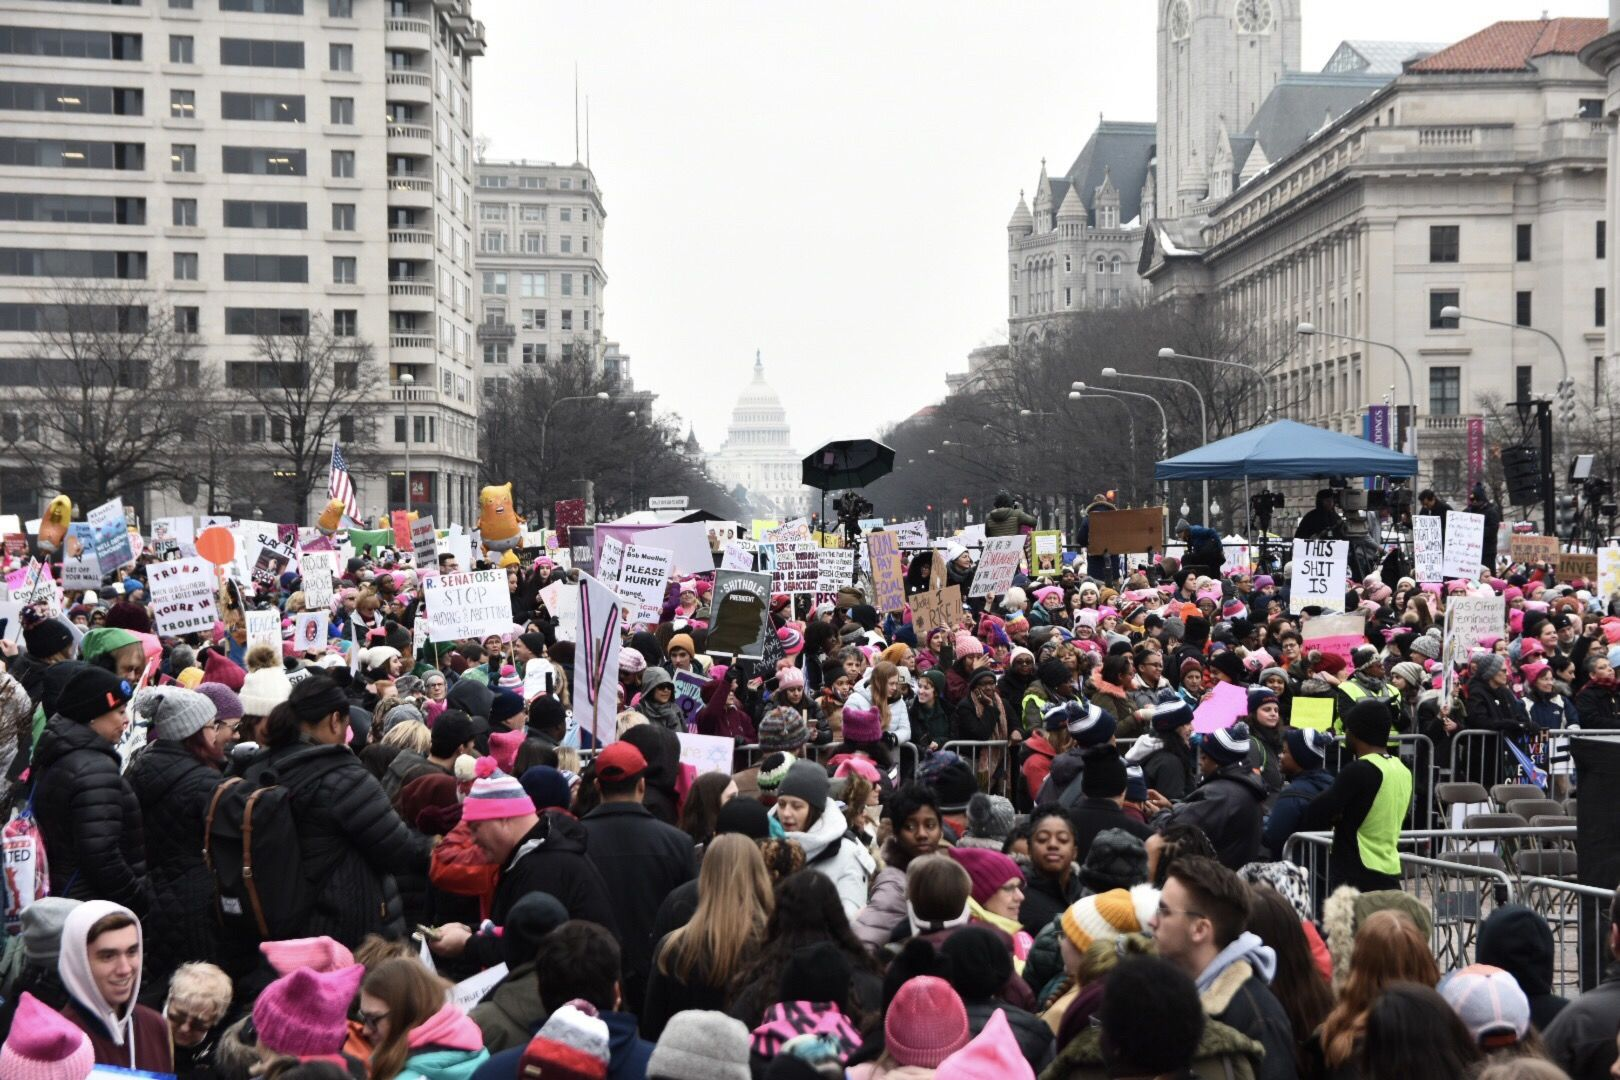 Turnout for the third Women's March was — despite a deepening controversy — on par with the 2018 installment of the now annual march, during which about 10,000 gathered at the foot of the Lincoln Memorial. Women's March 2019 featured a short walk down Pennsylvania Avenue and a loop back to Freedom Plaza down E Street before a rally. (WTOP/Alejandro Alvarez)